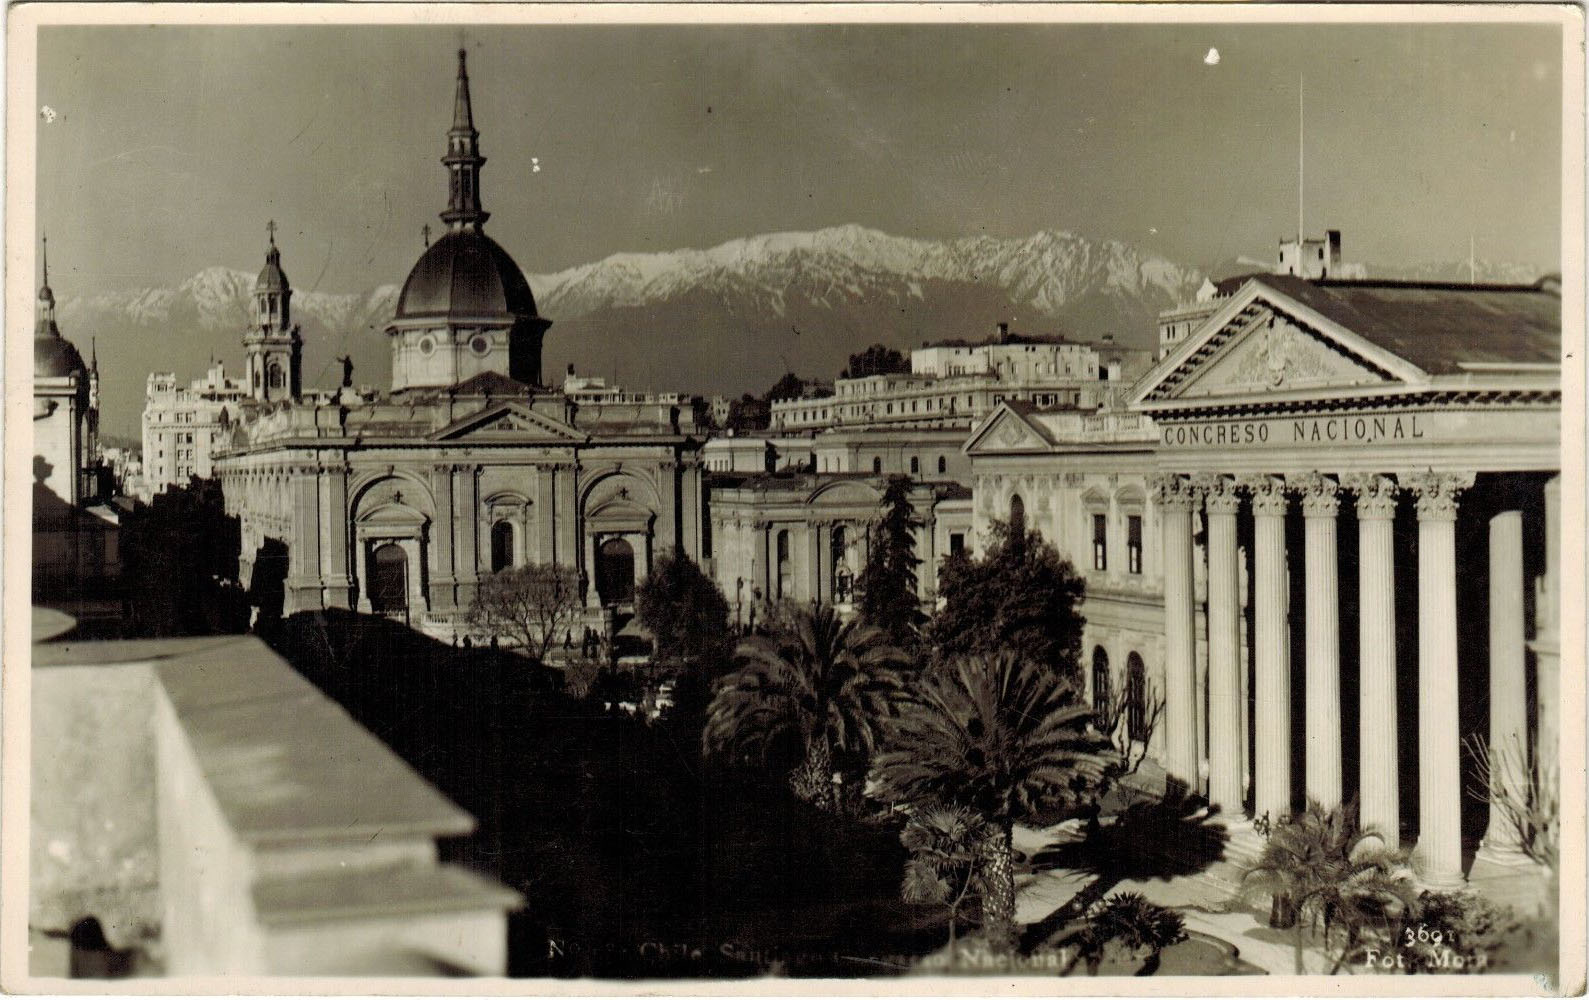 Enterreno - Fotos históricas de chile - fotos antiguas de Chile - Catedral y Congreso Nacional en 1946